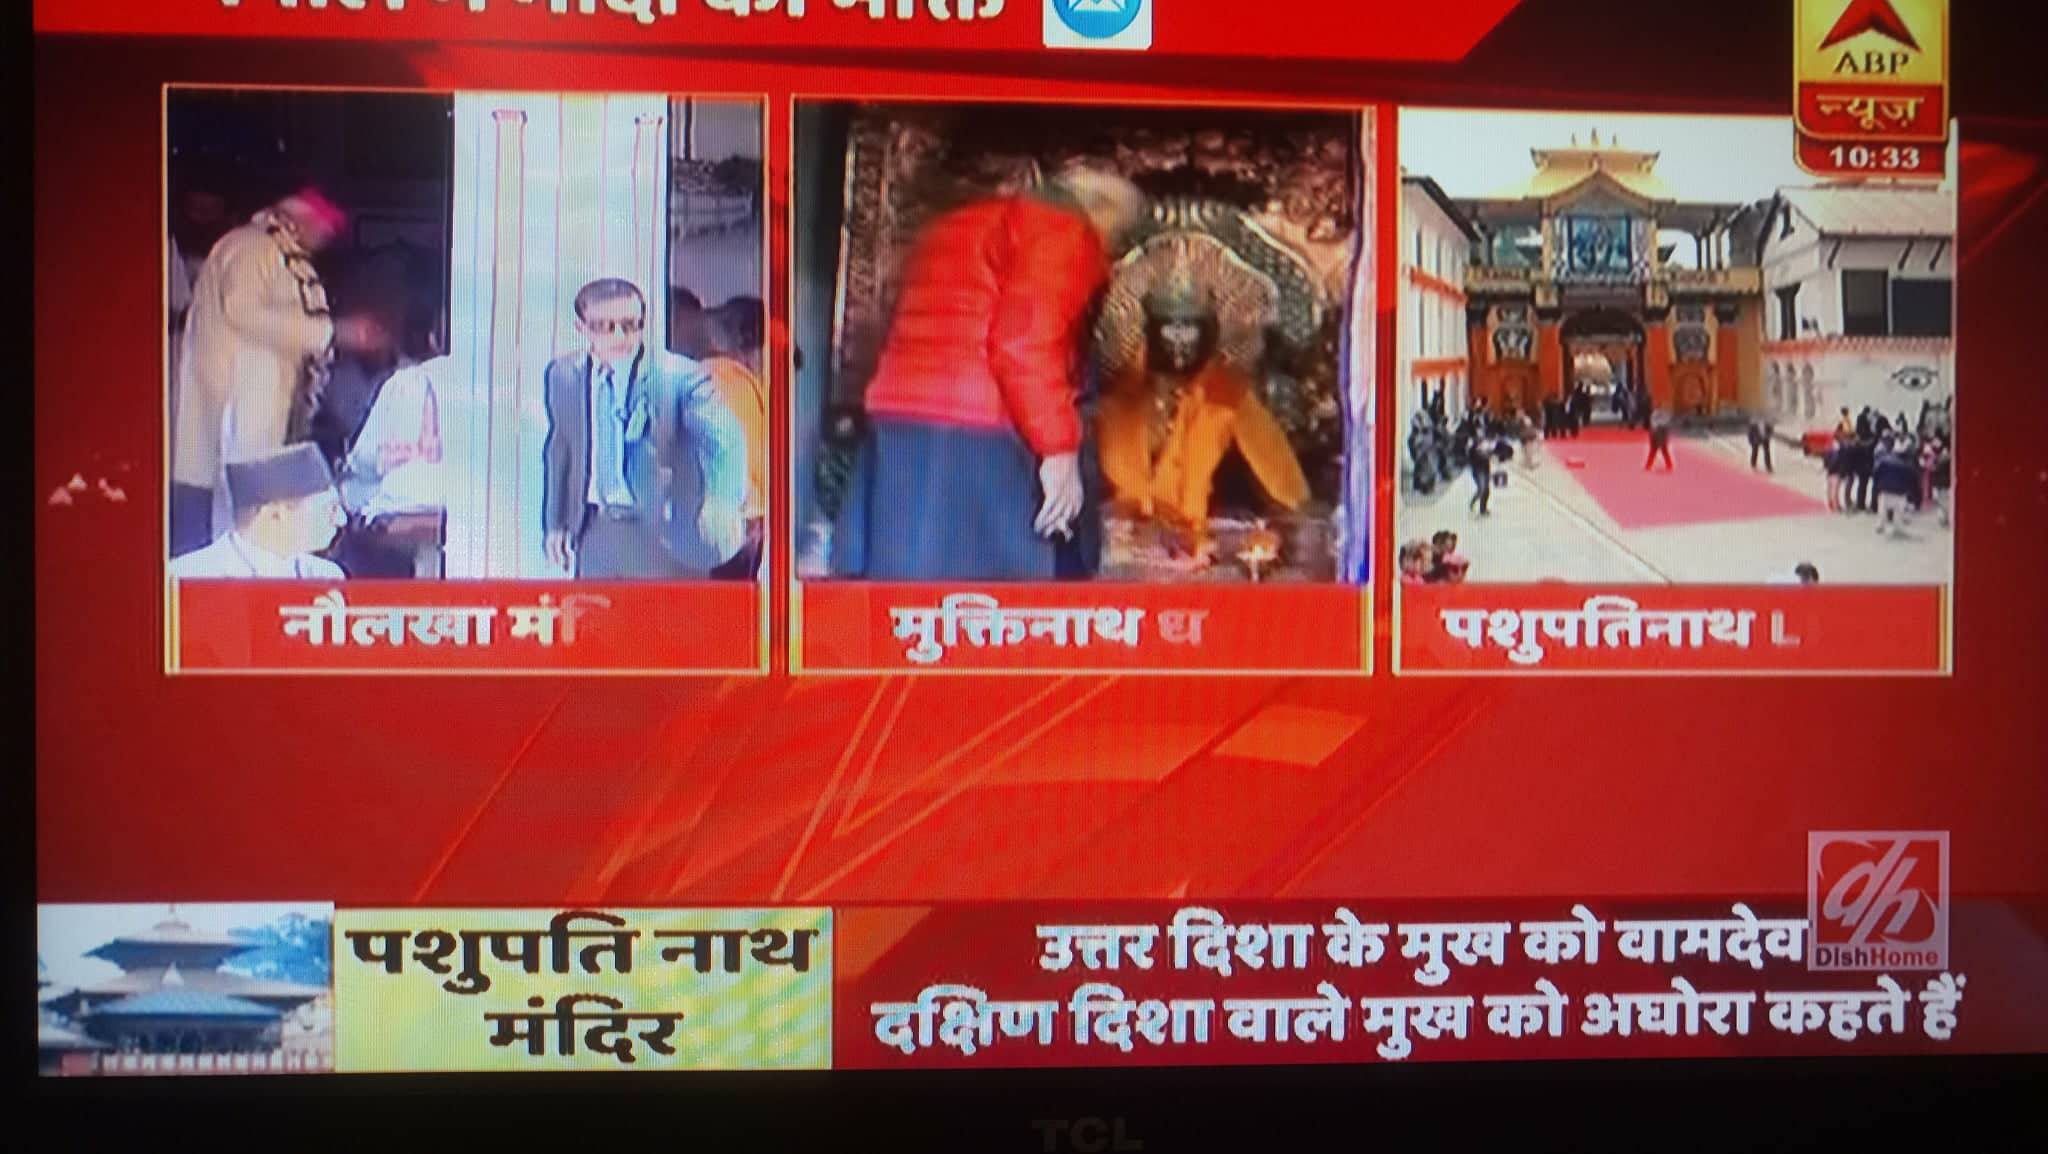 CM disappointed by Modi's entourage at Muktinath